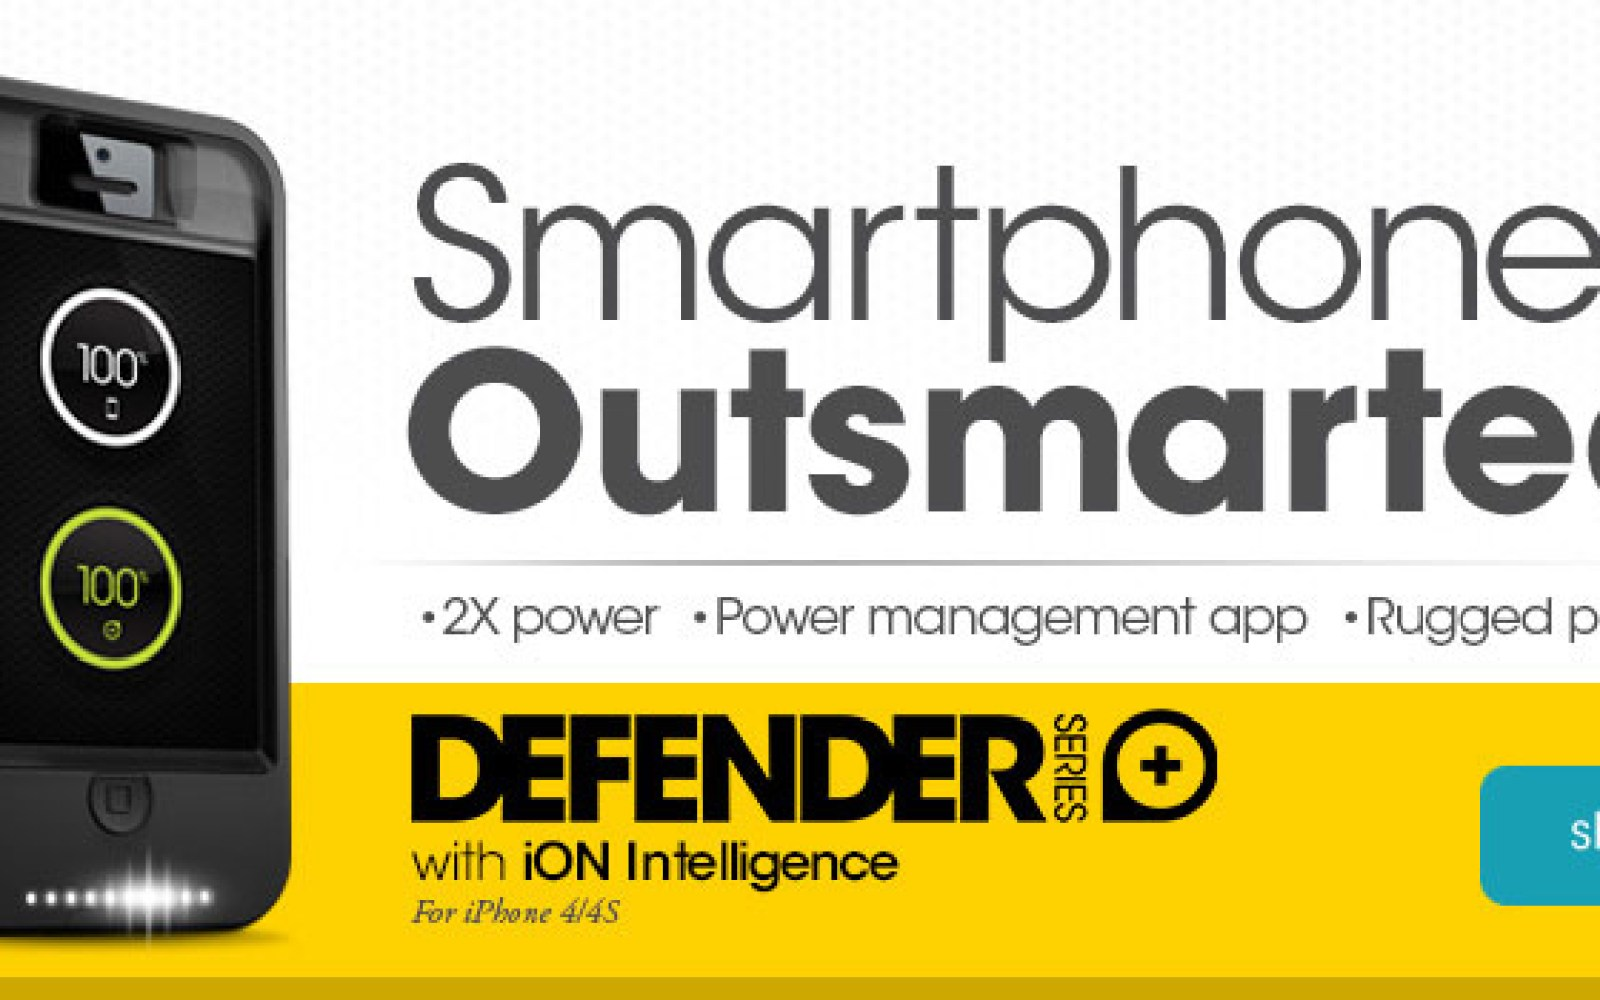 OtterBox releases iPhone Defender Series battery backup case w/ intelligent power management app